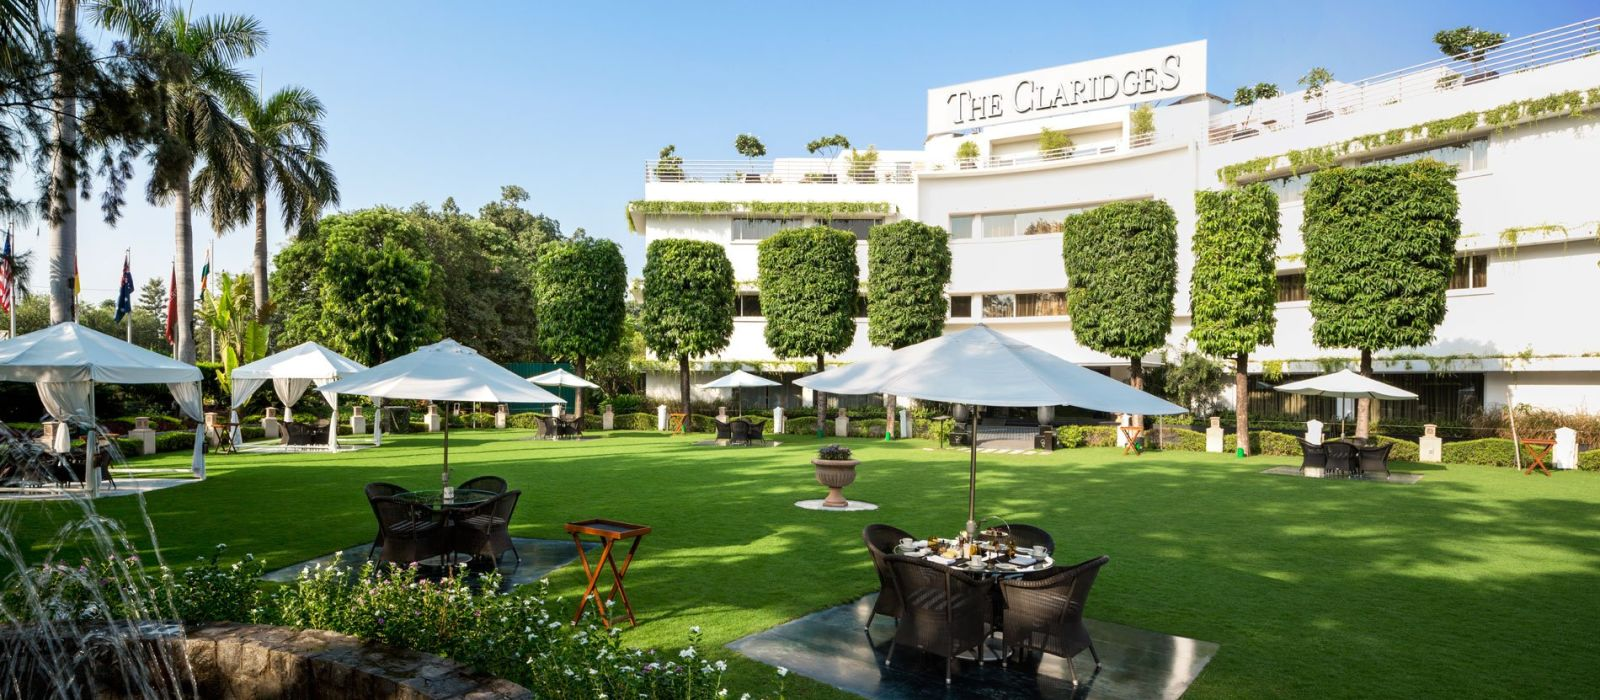 Hotel The Claridges North India